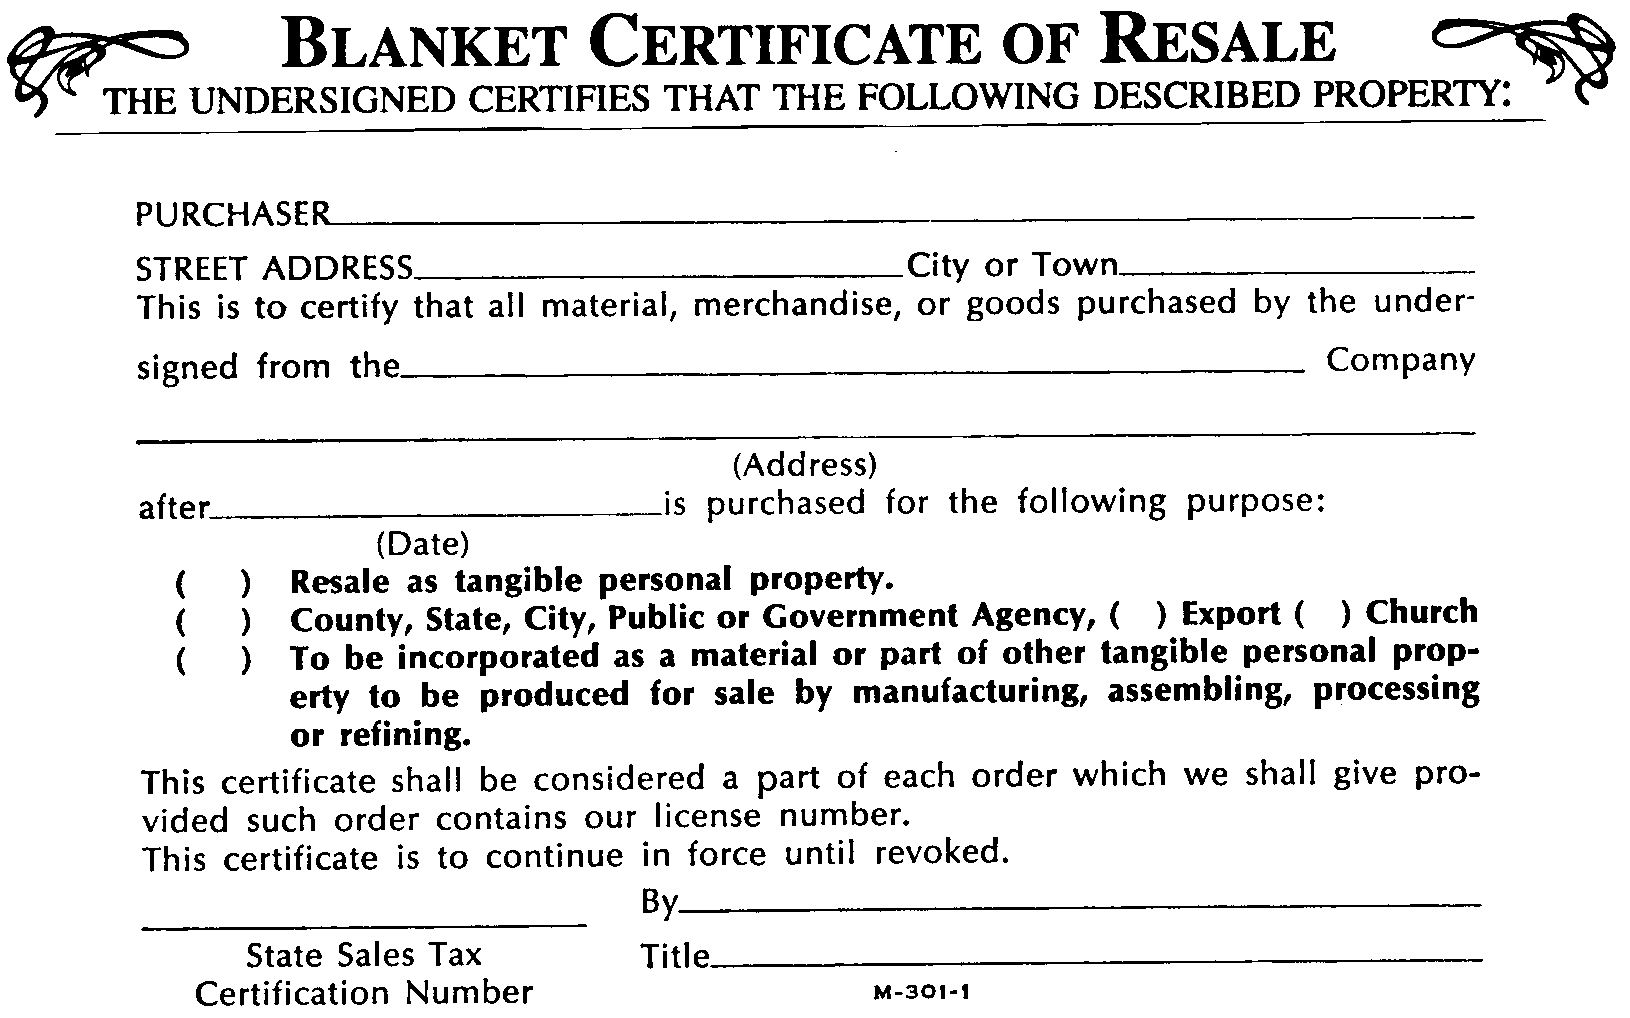 What Is A Blanket Certificate Of Re 7500 Photo Blanket